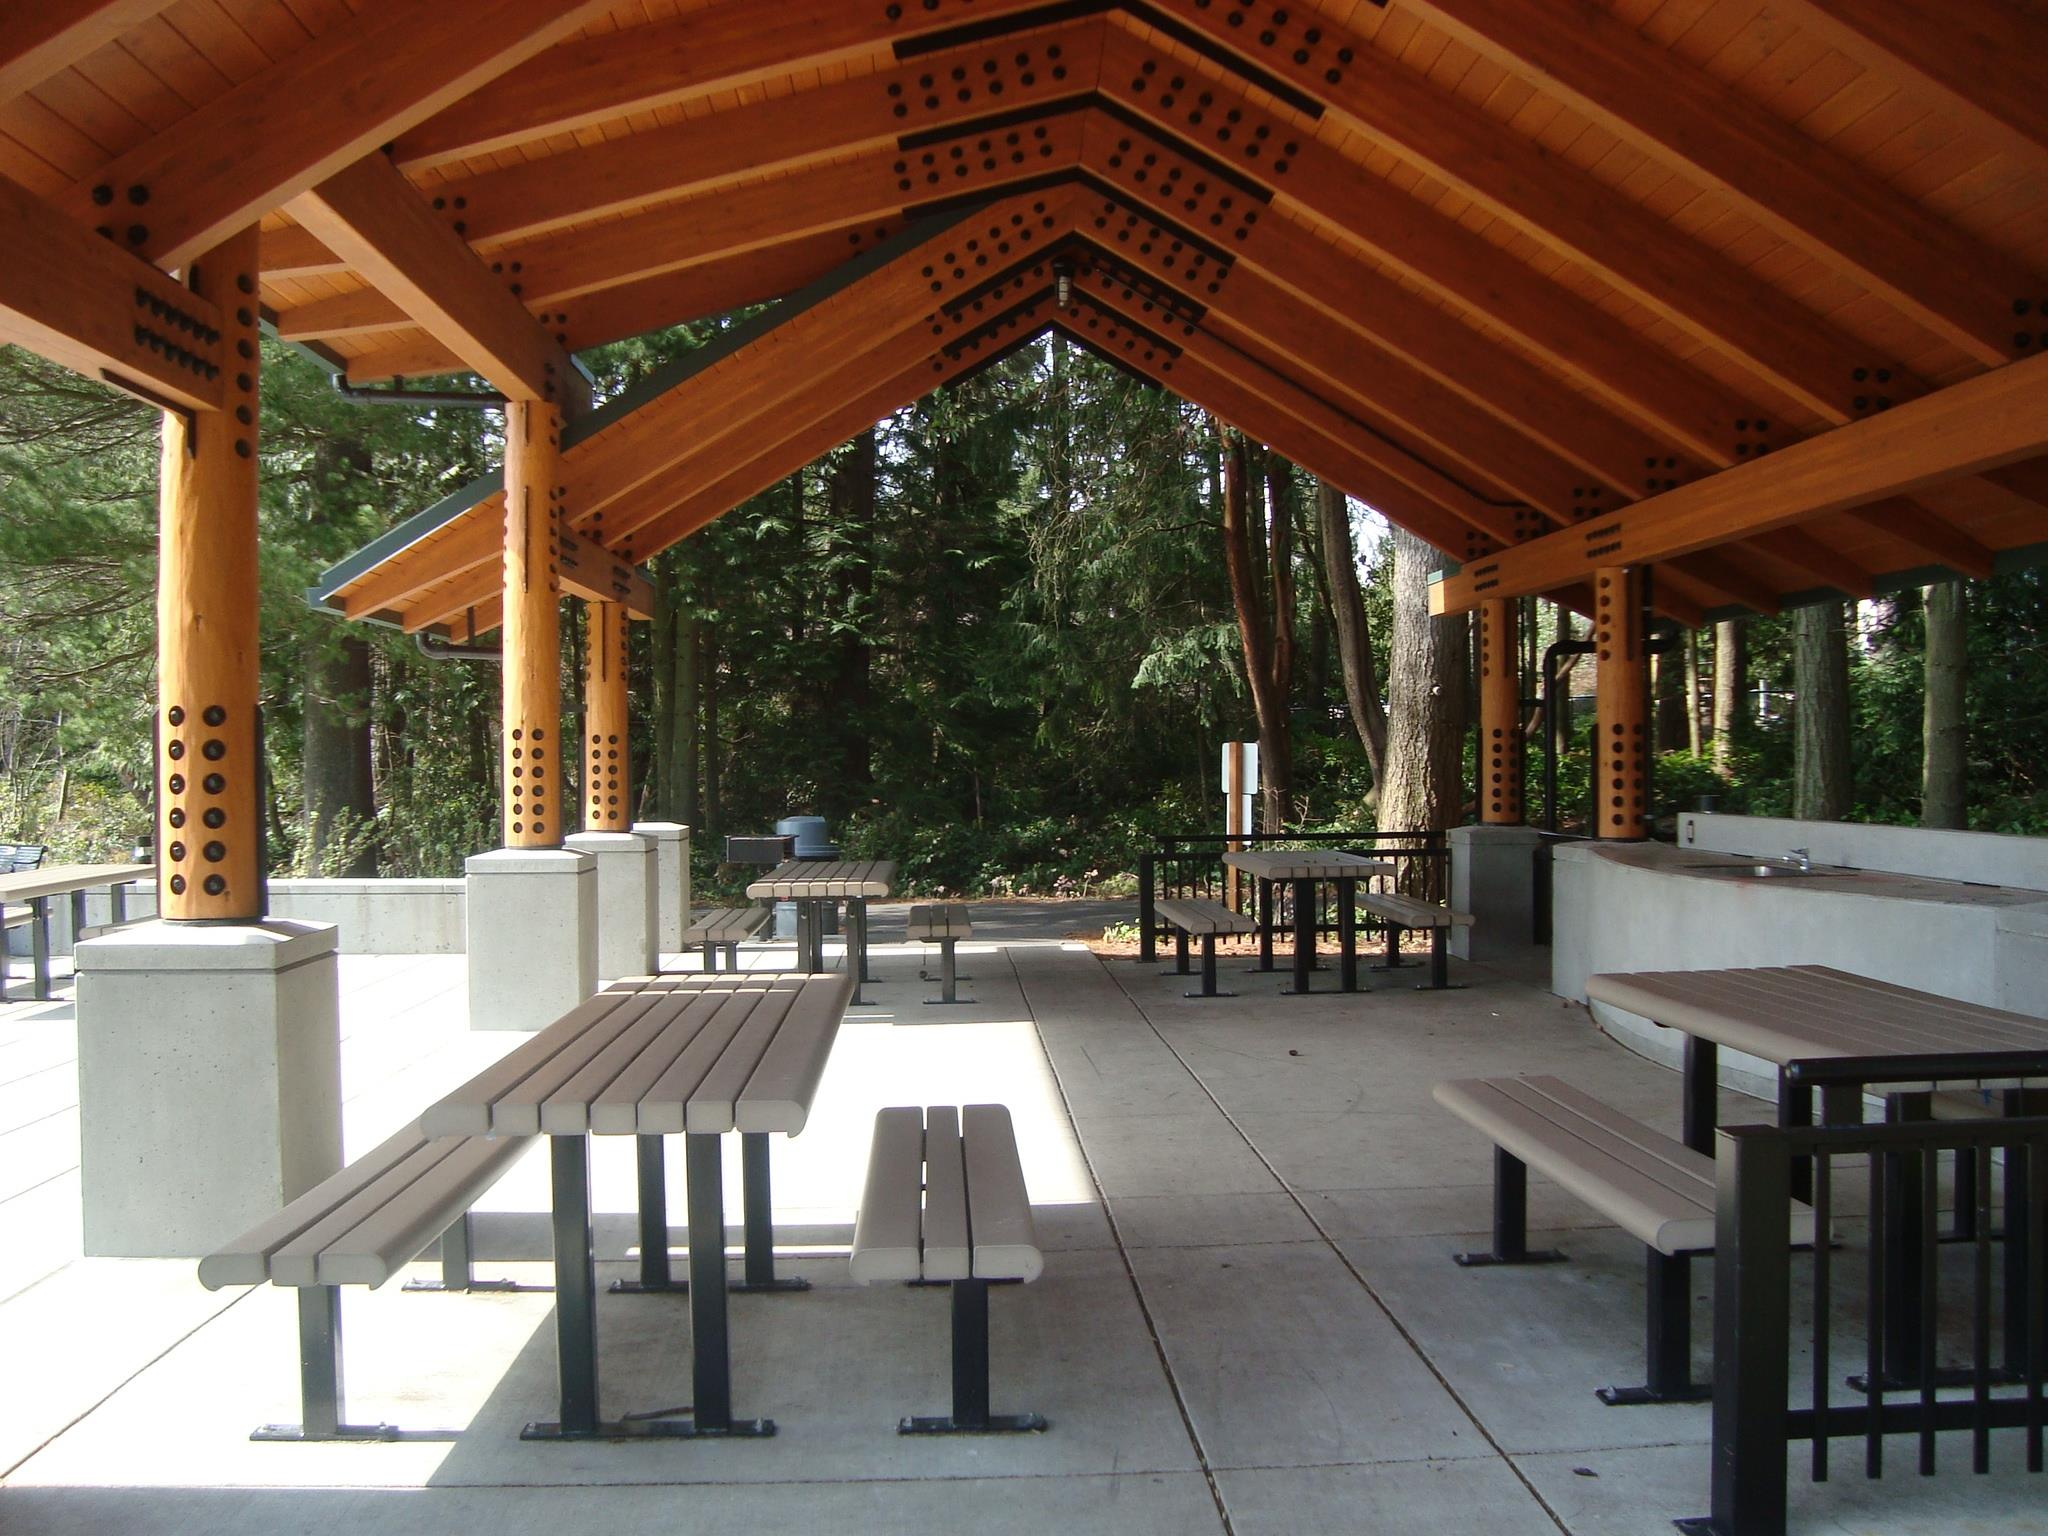 Edmonds City Park Picnic Shelter